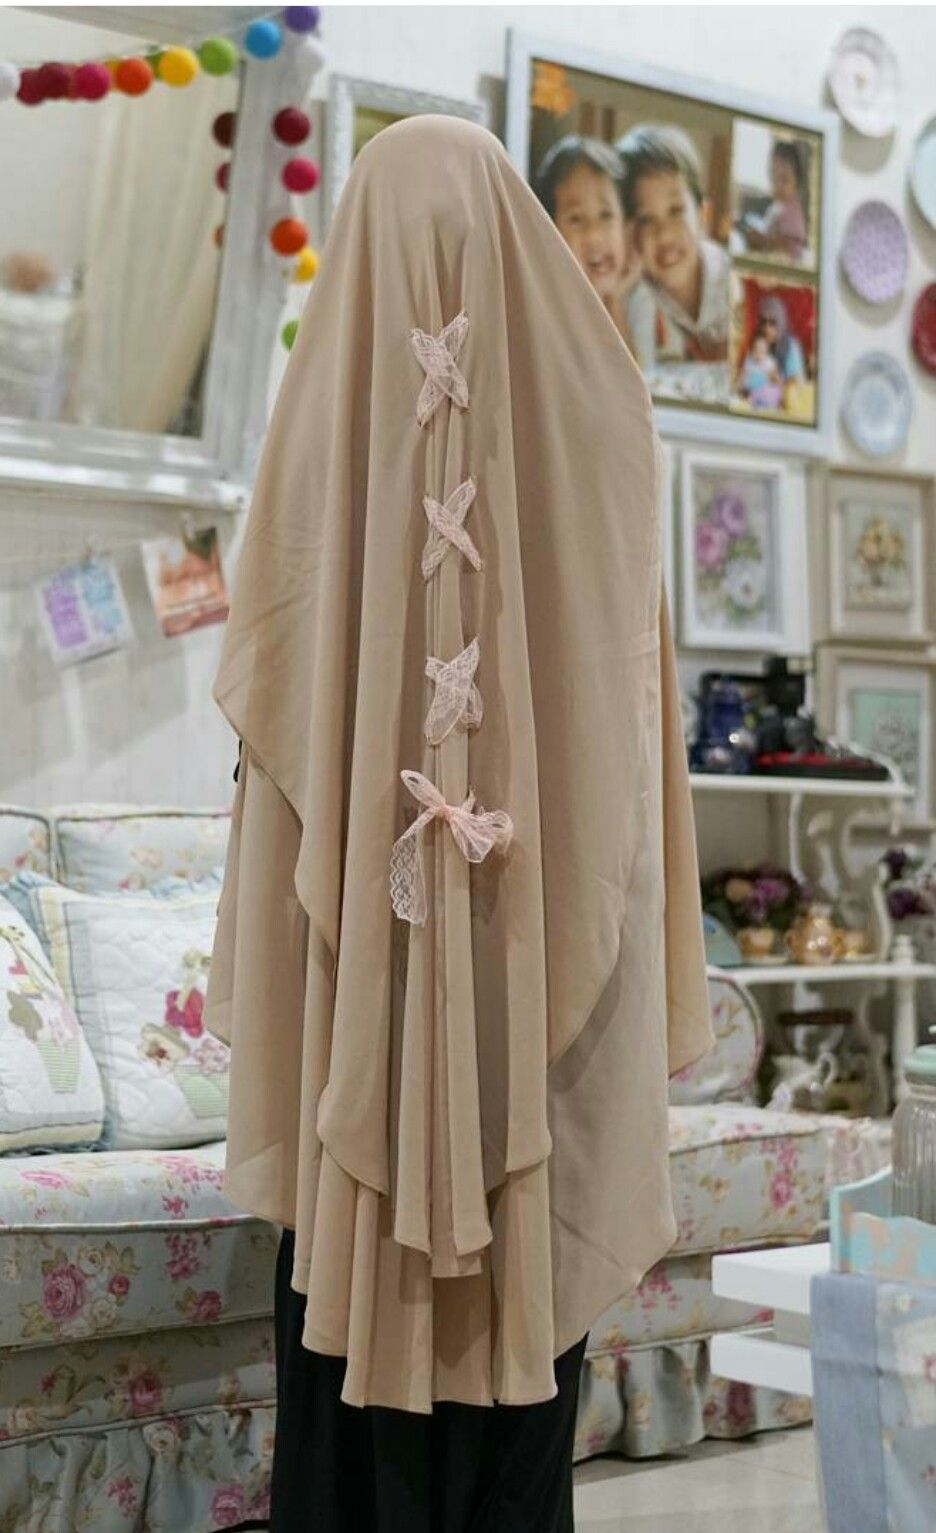 Pin by ri btm on muslimah fashion pinterest hijab niqab abayas